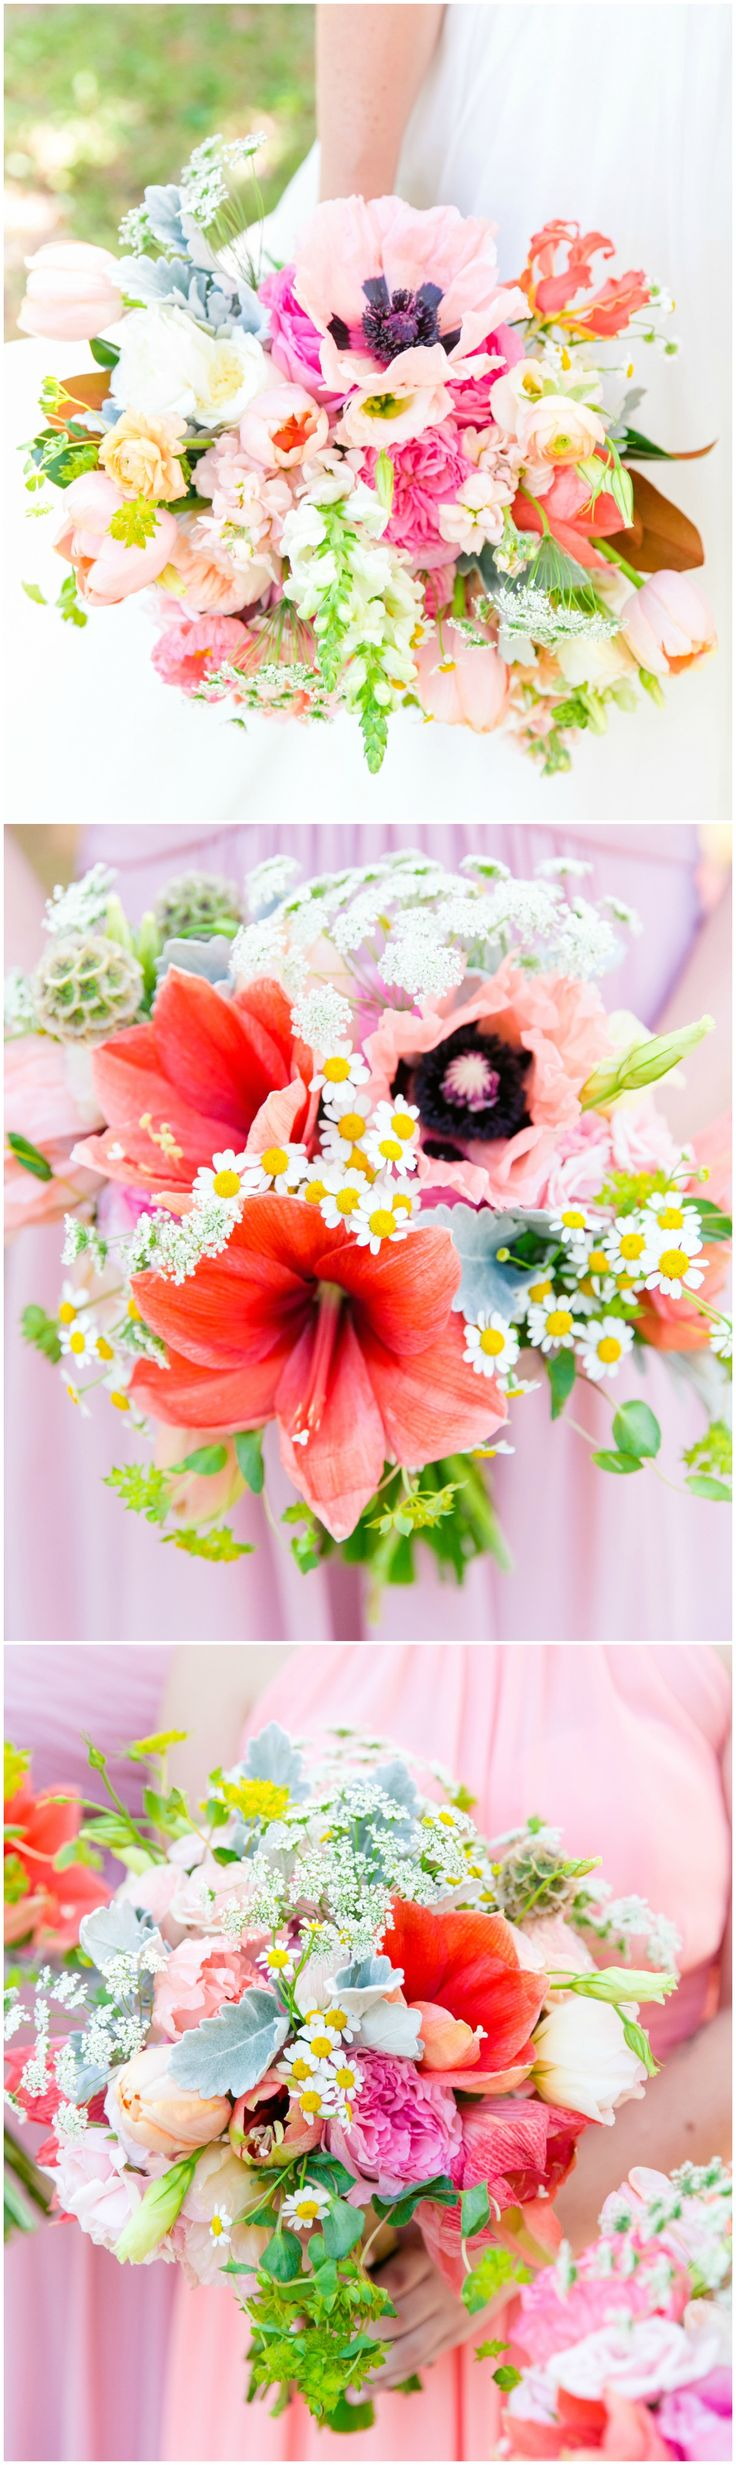 Colorful wedding bouquets, scabiosa pods, hibiscus, summer flowers, pink bridesmaid dresses